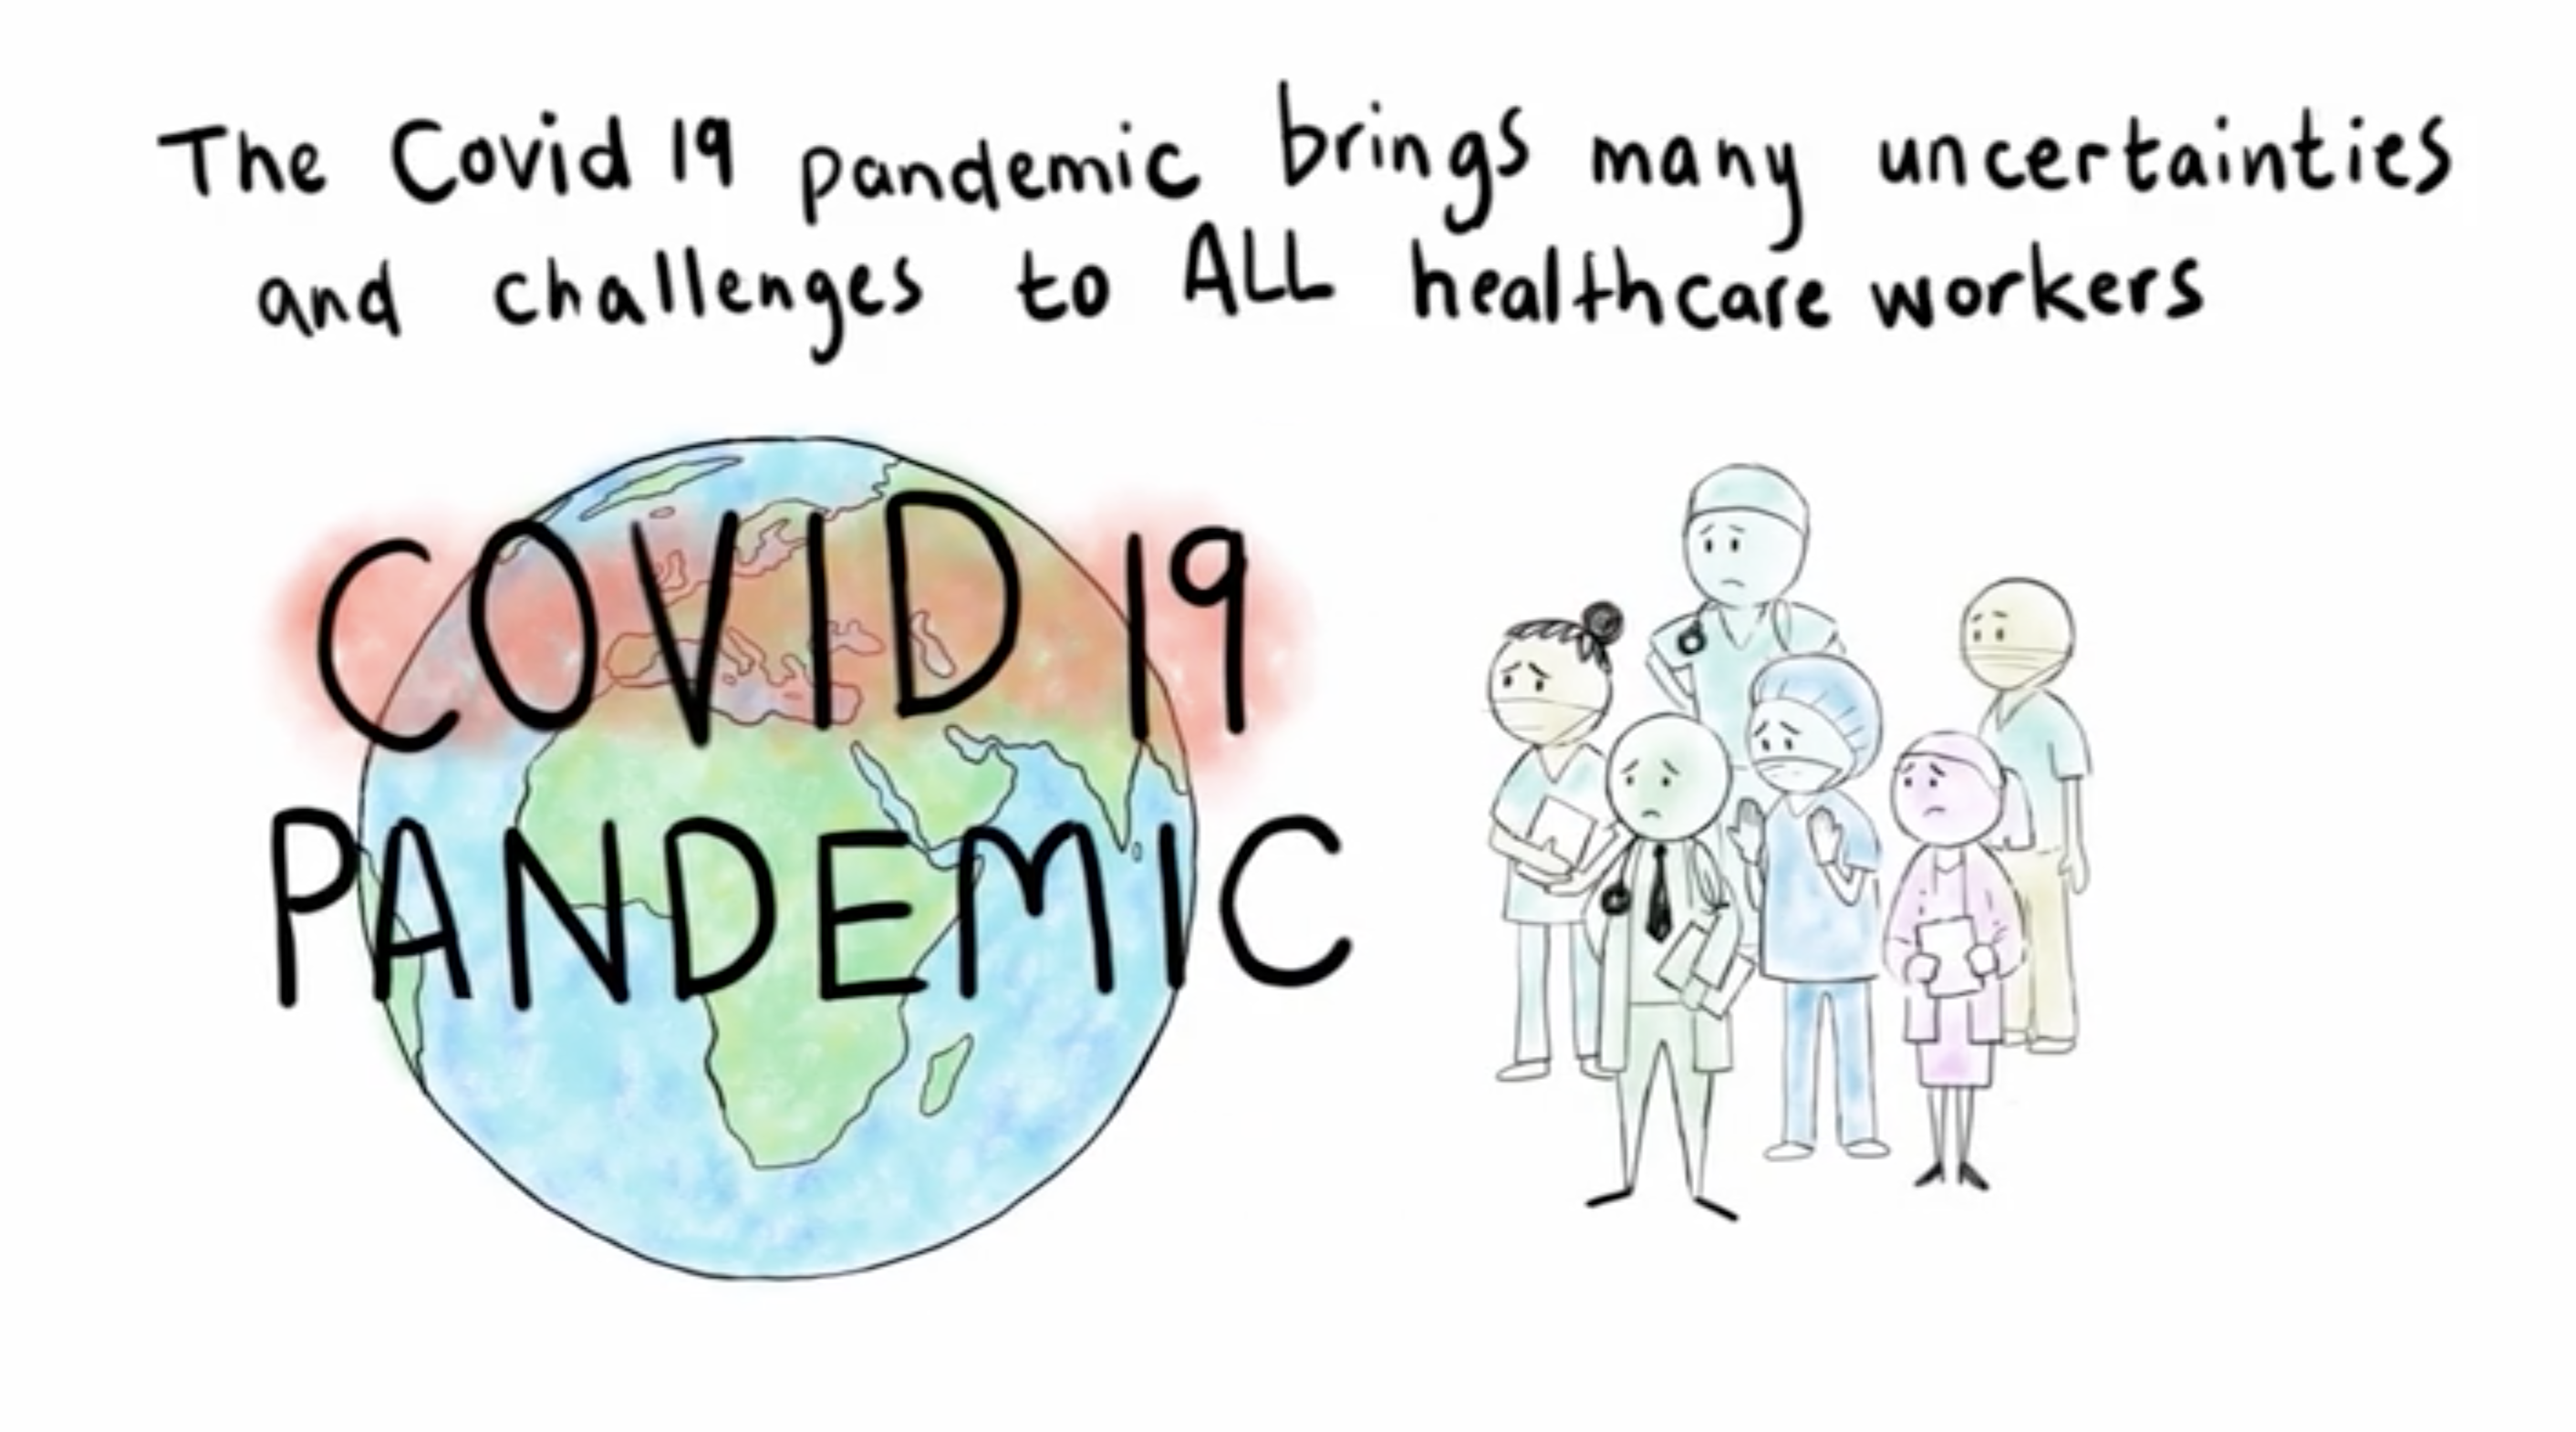 UKZN Academics Create Video on Healthcare Worker Anxieties Related to COVID-19